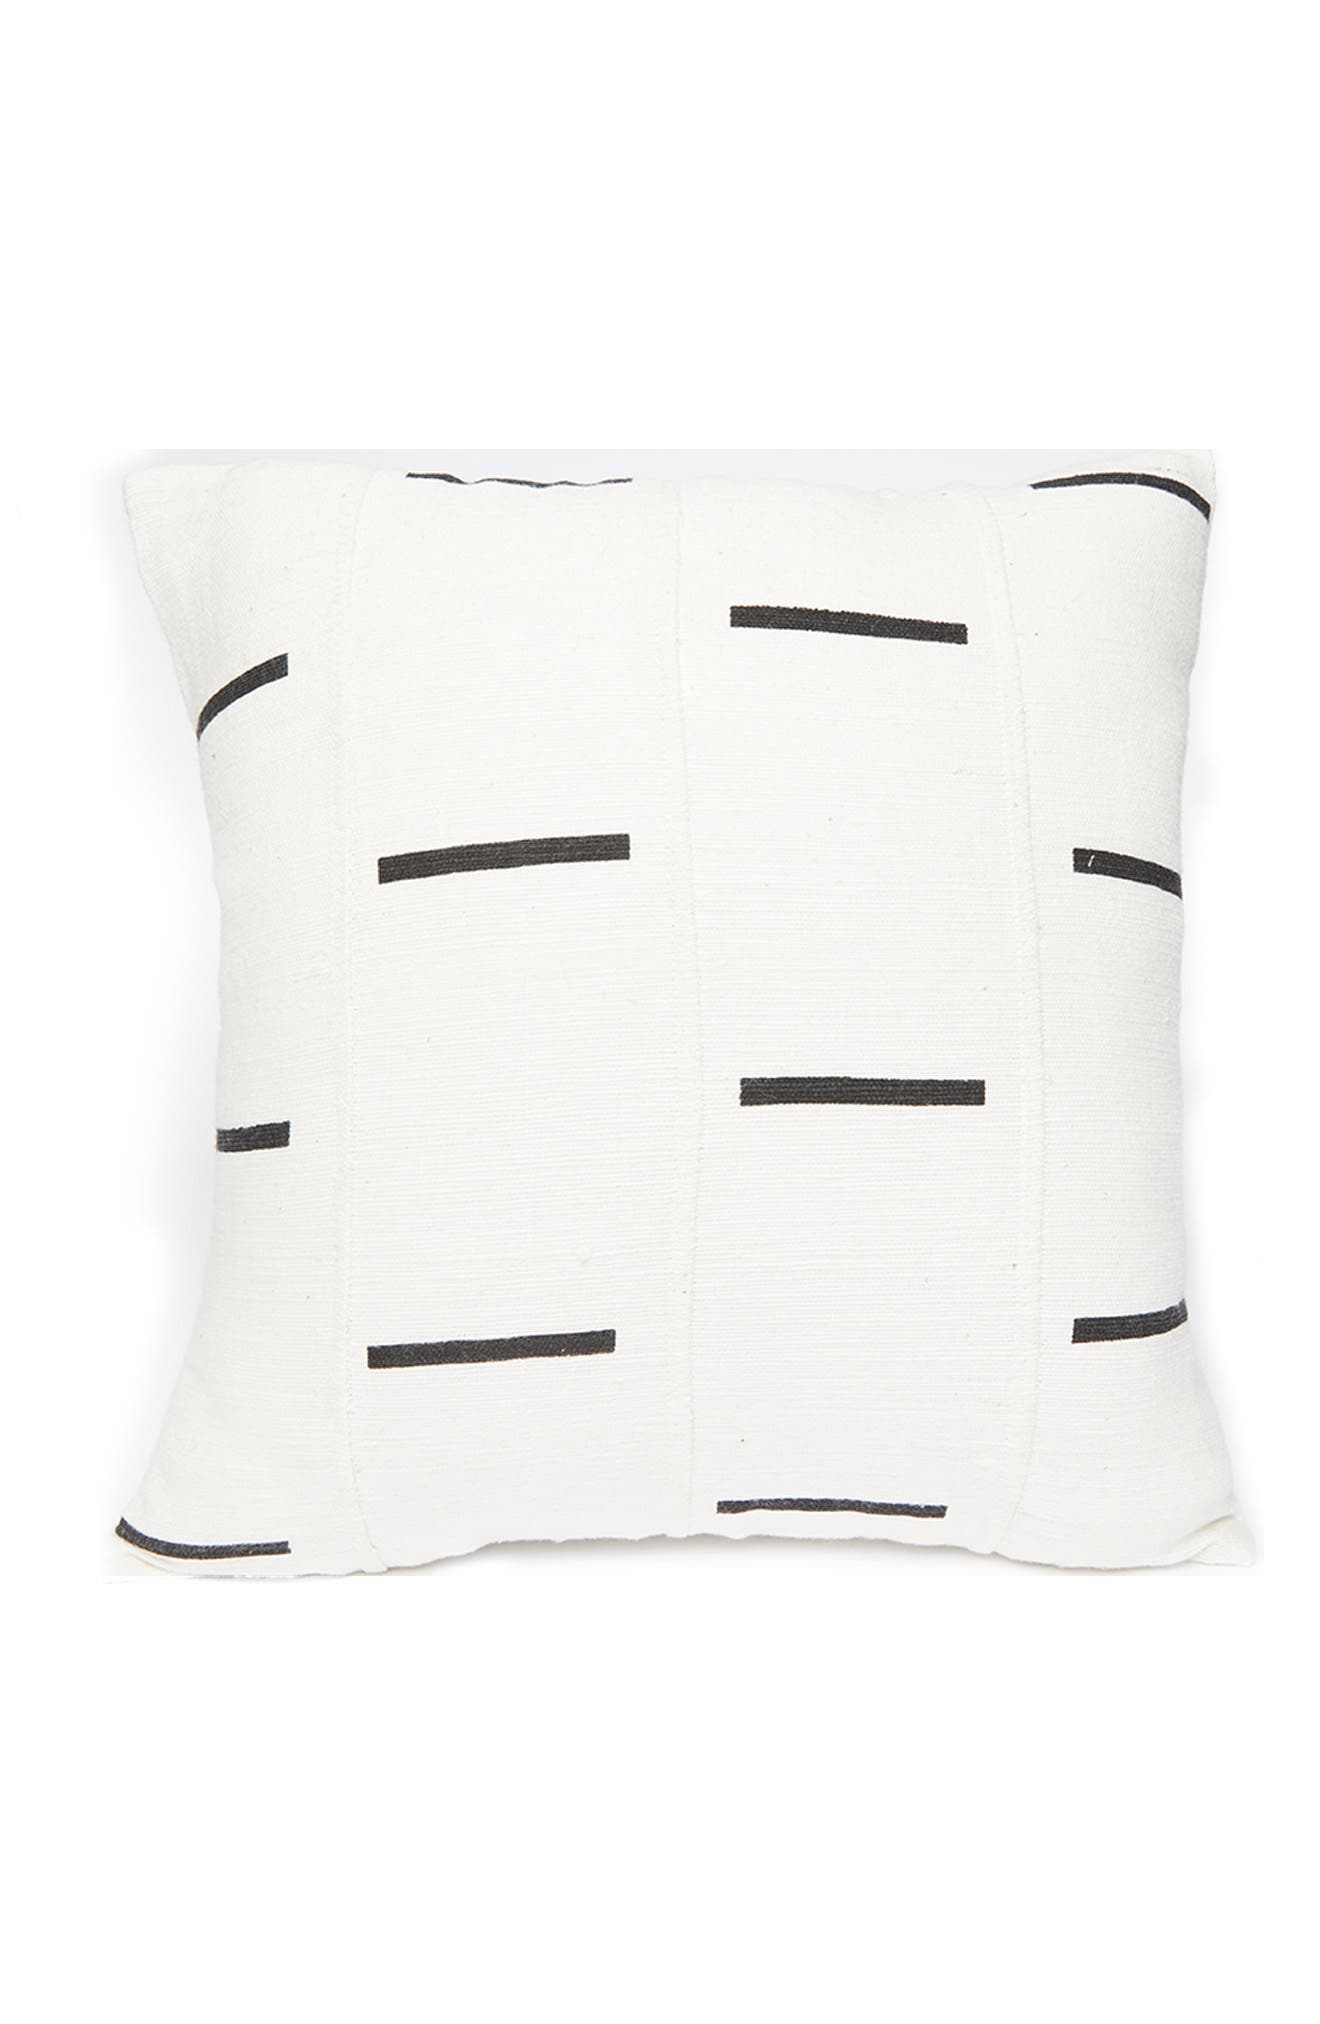 UNCOMMON JAMES BY KRISTIN CAVALLARI,                             Read Between the Lines Pillow Cover,                             Main thumbnail 1, color,                             WHITE